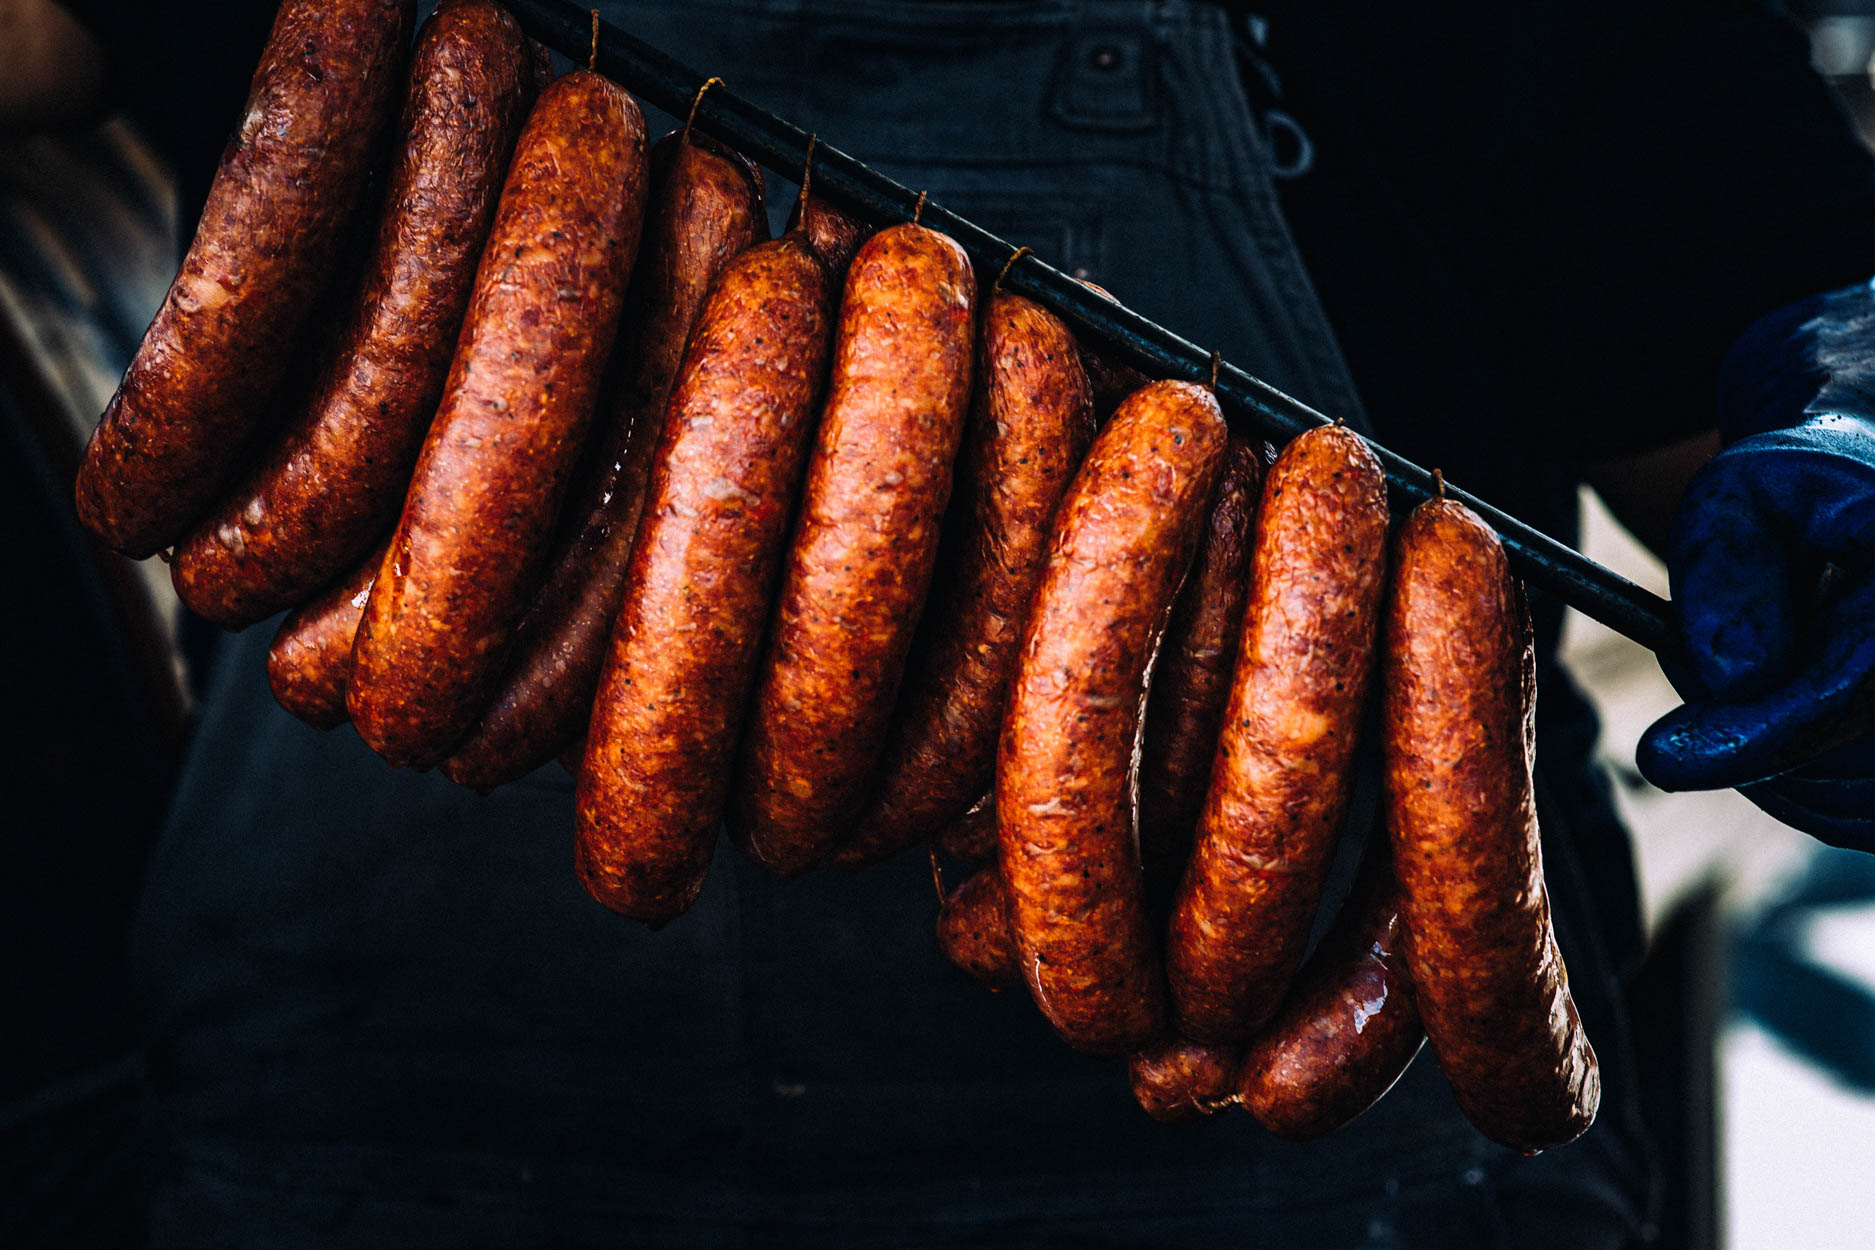 Sausage links at Heritage Barbecue